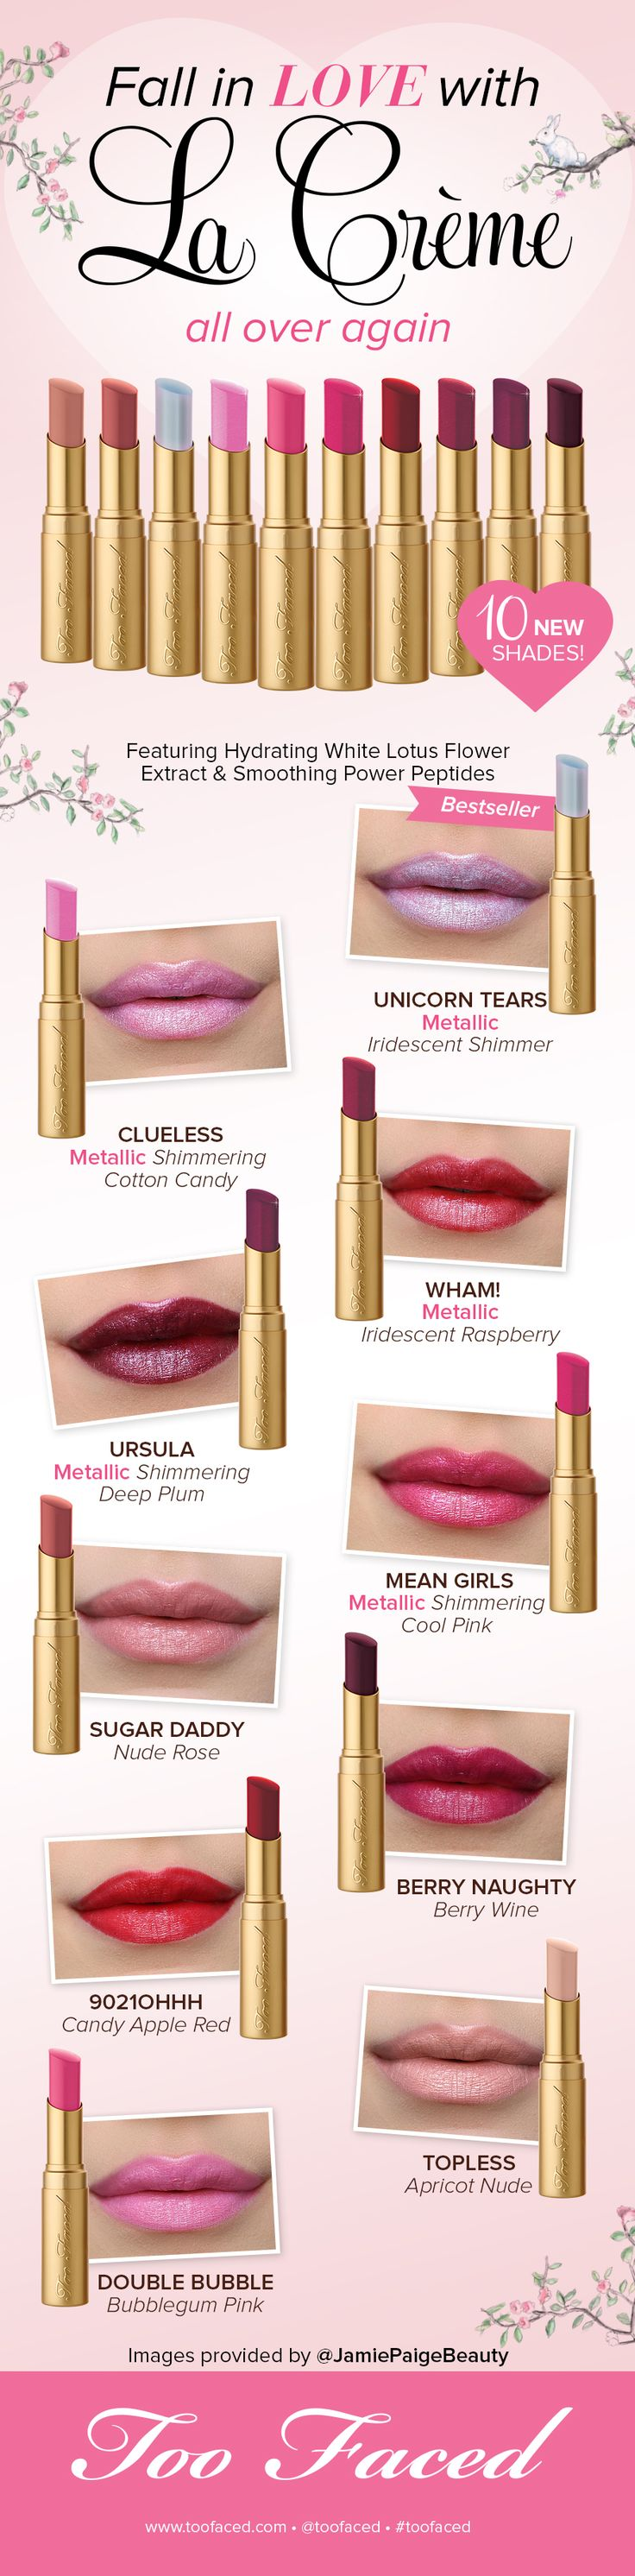 La Crème Swatches: See all 10 New Shades! - Too Faced - Too Faced Cosmetics - #toofaced